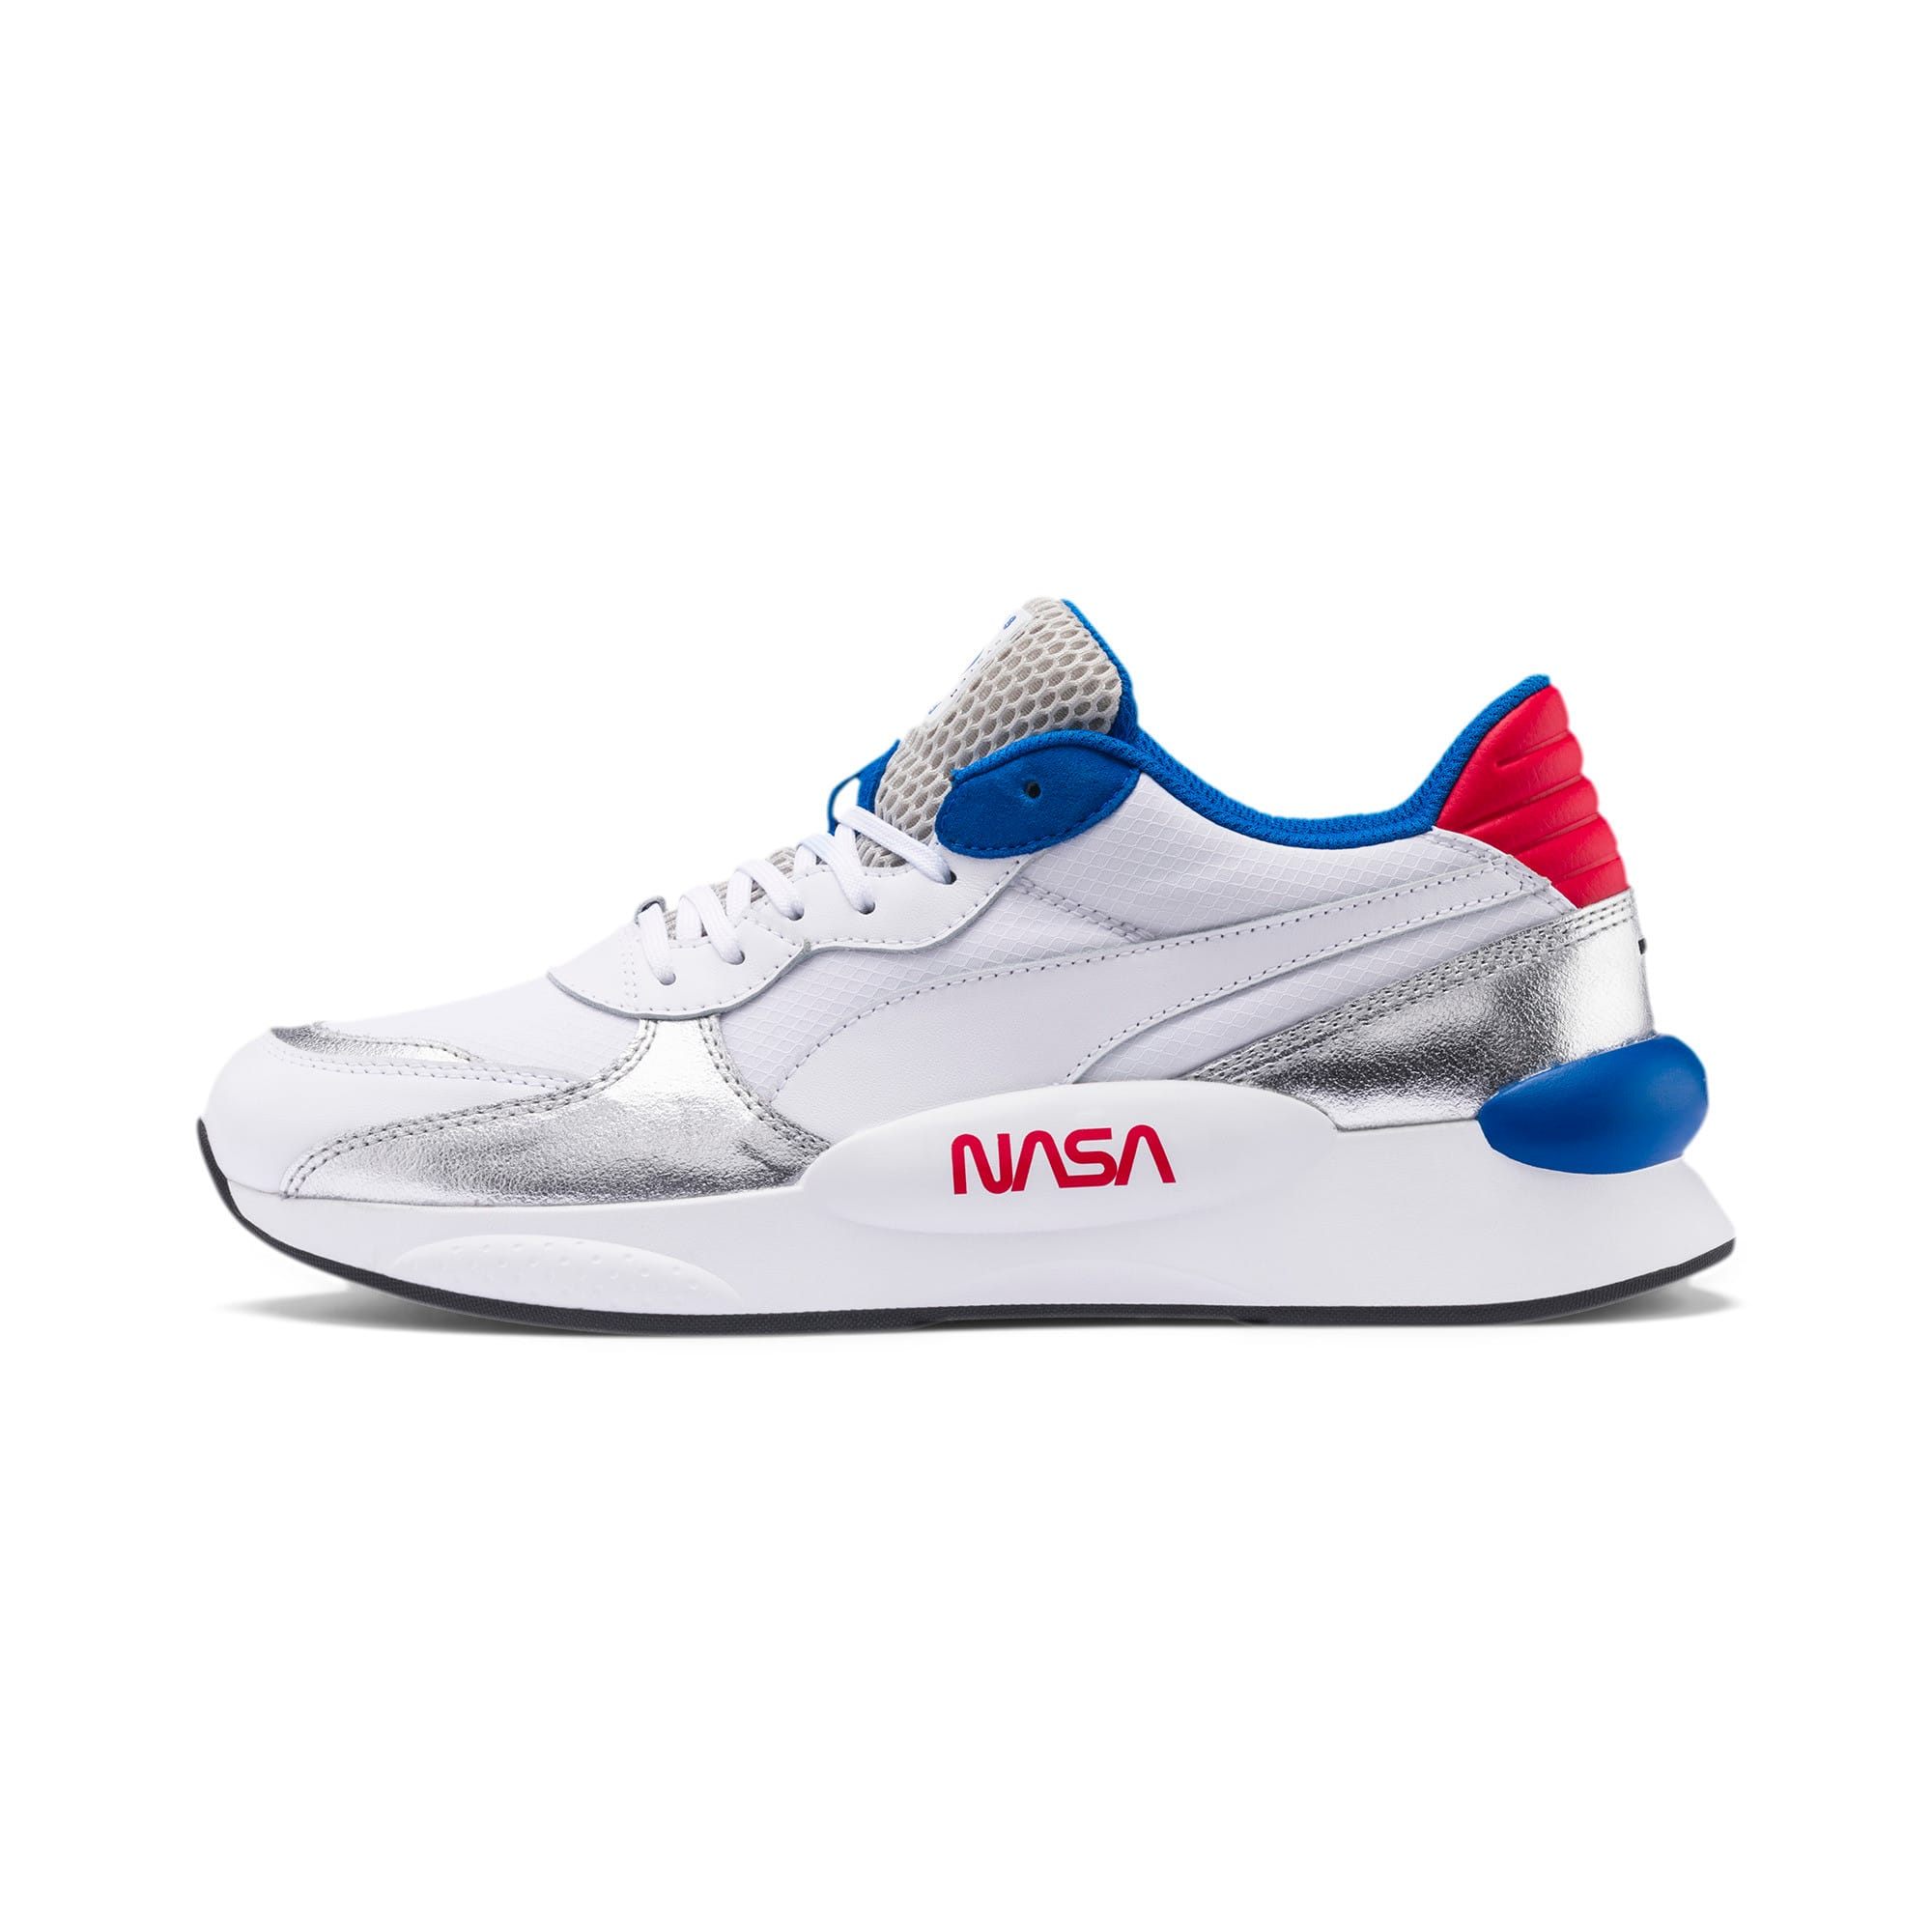 RS 9.8 Space Explorer Sneaker, Puma White-Puma Silver, large